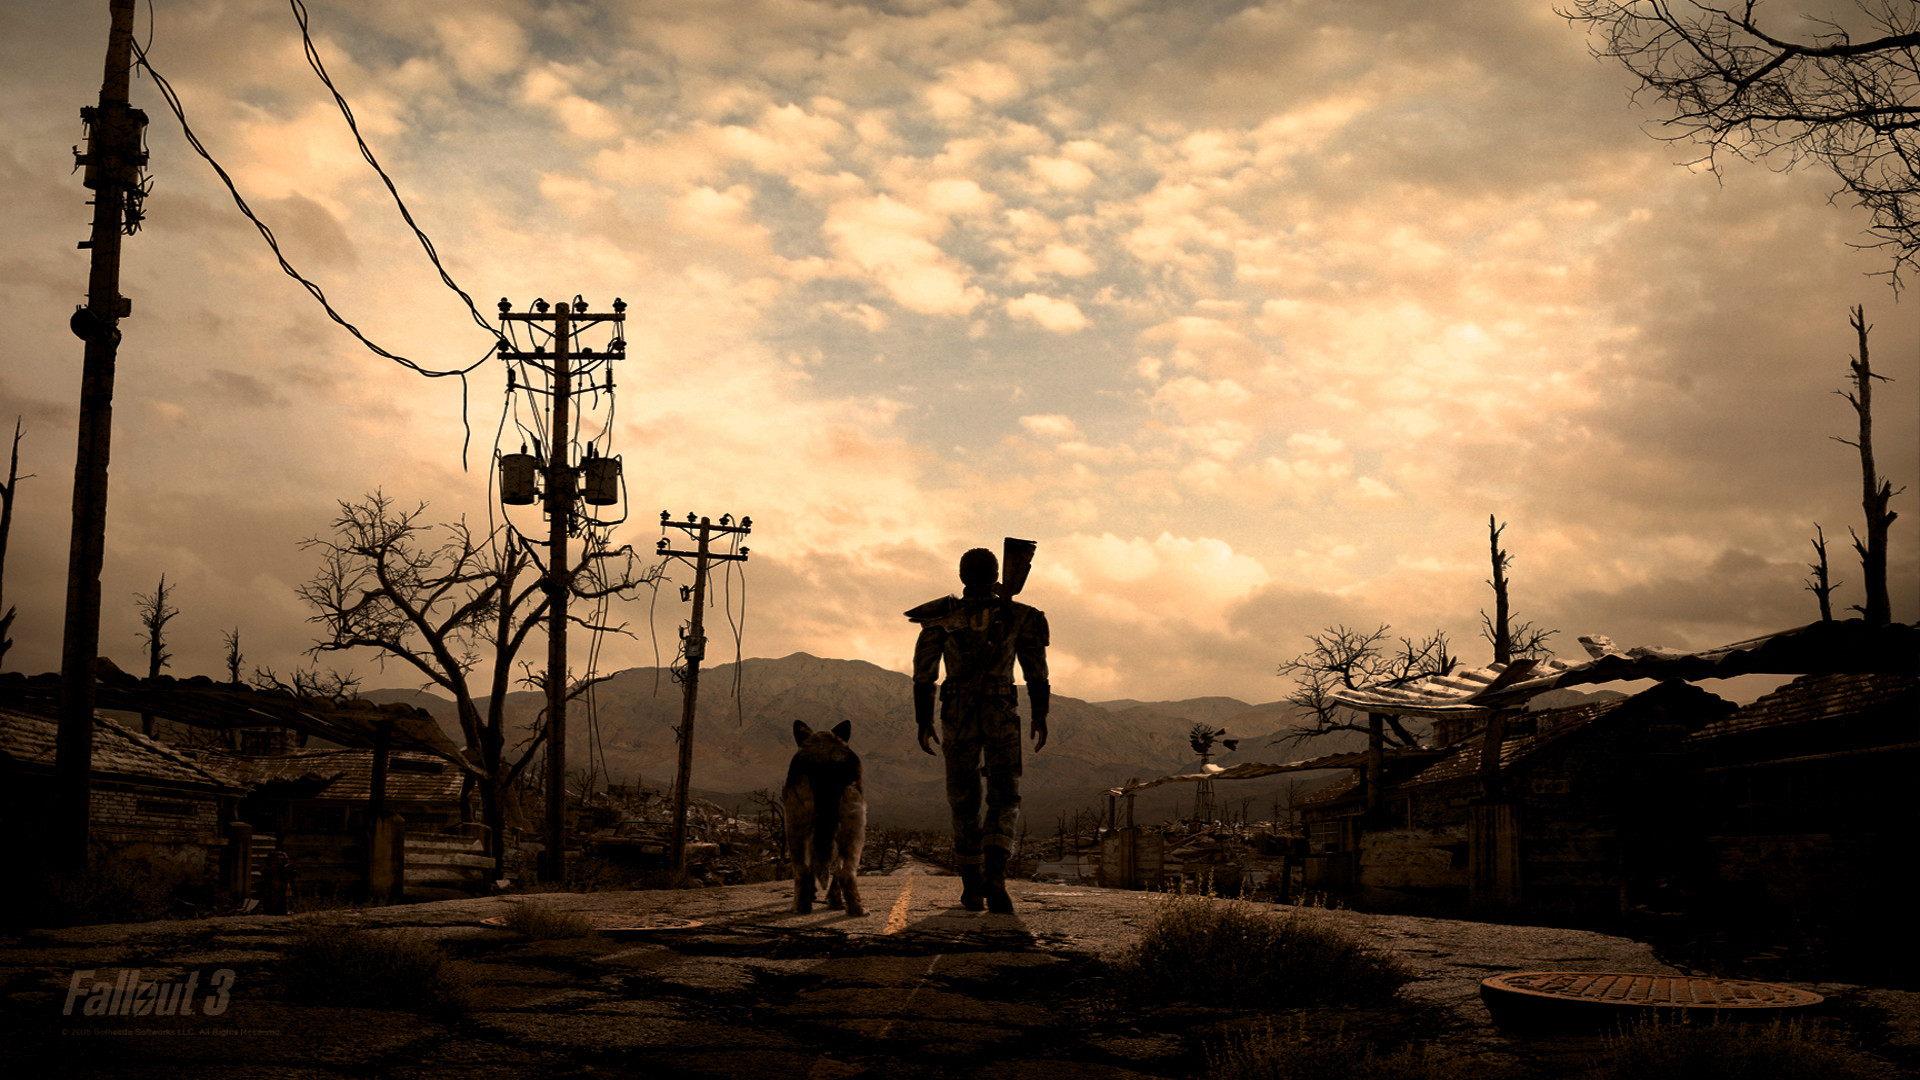 Fallout 3 Wallpaper Hd – HD Wallpapers Ultra – Page 3 of 4